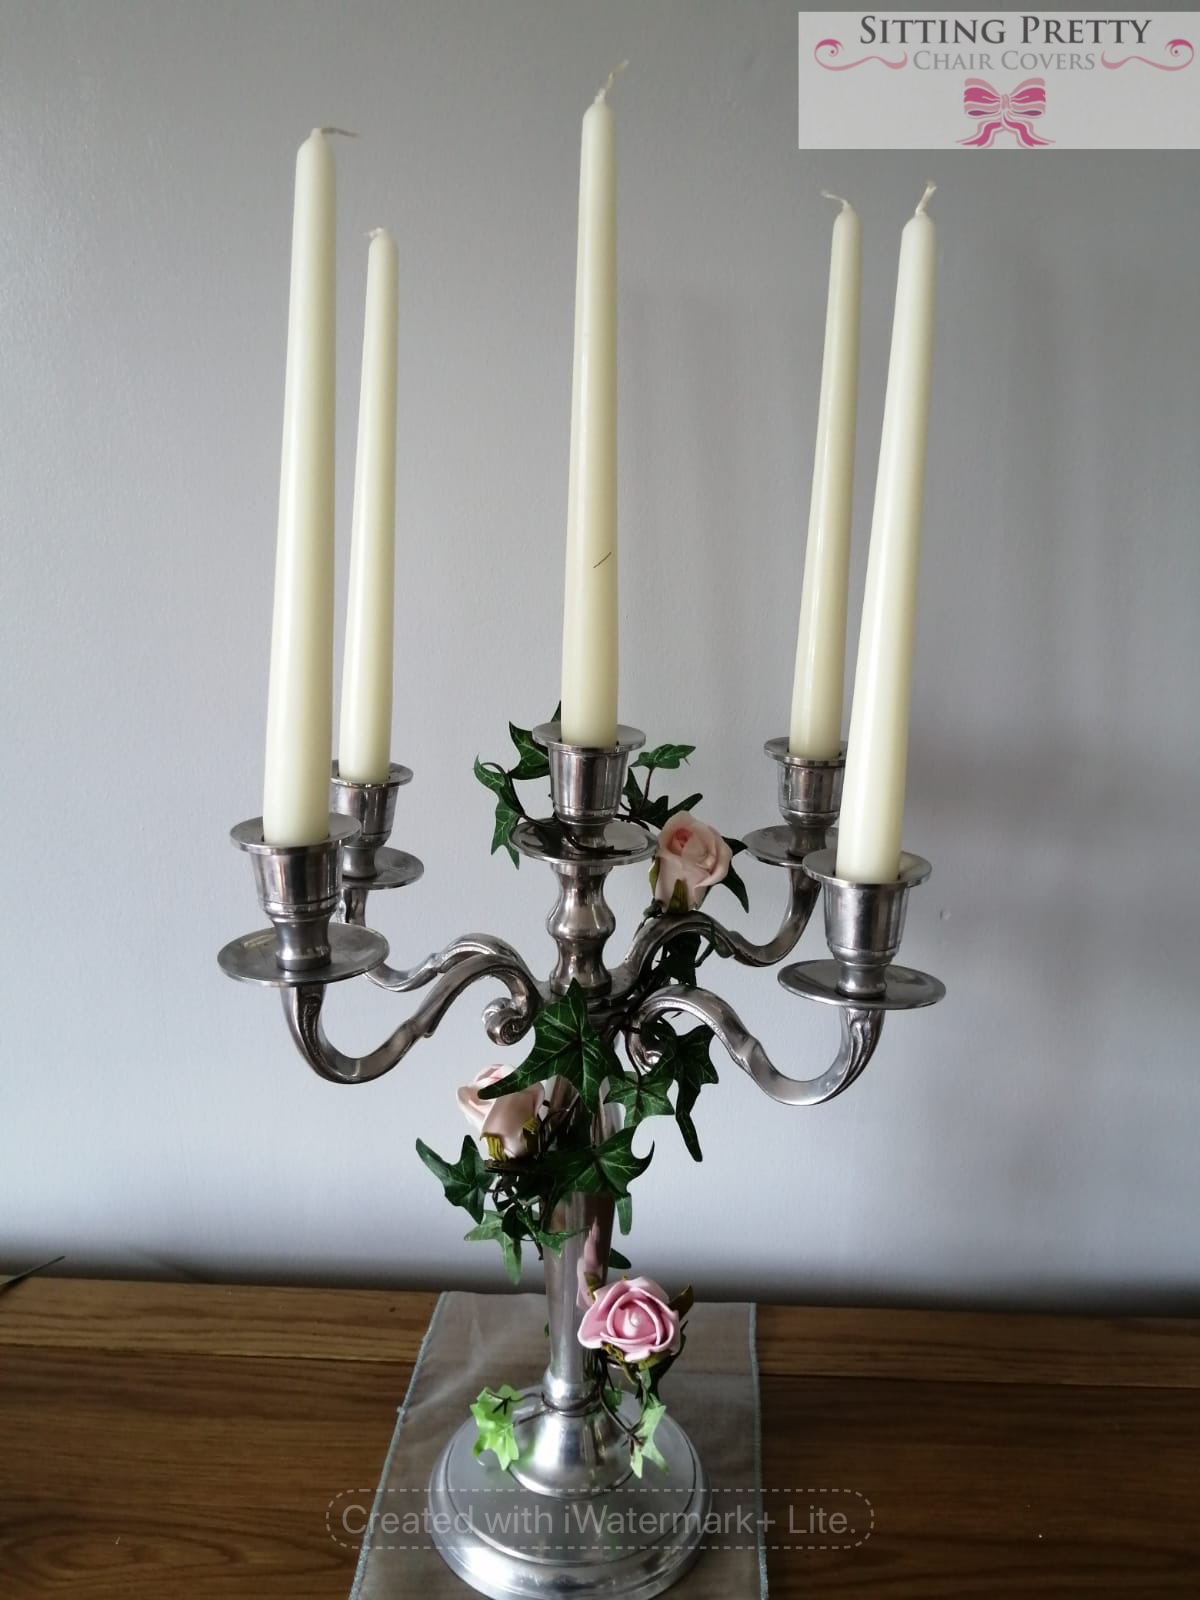 Candelabra decorated with ivy and roses, wedding centrepiece